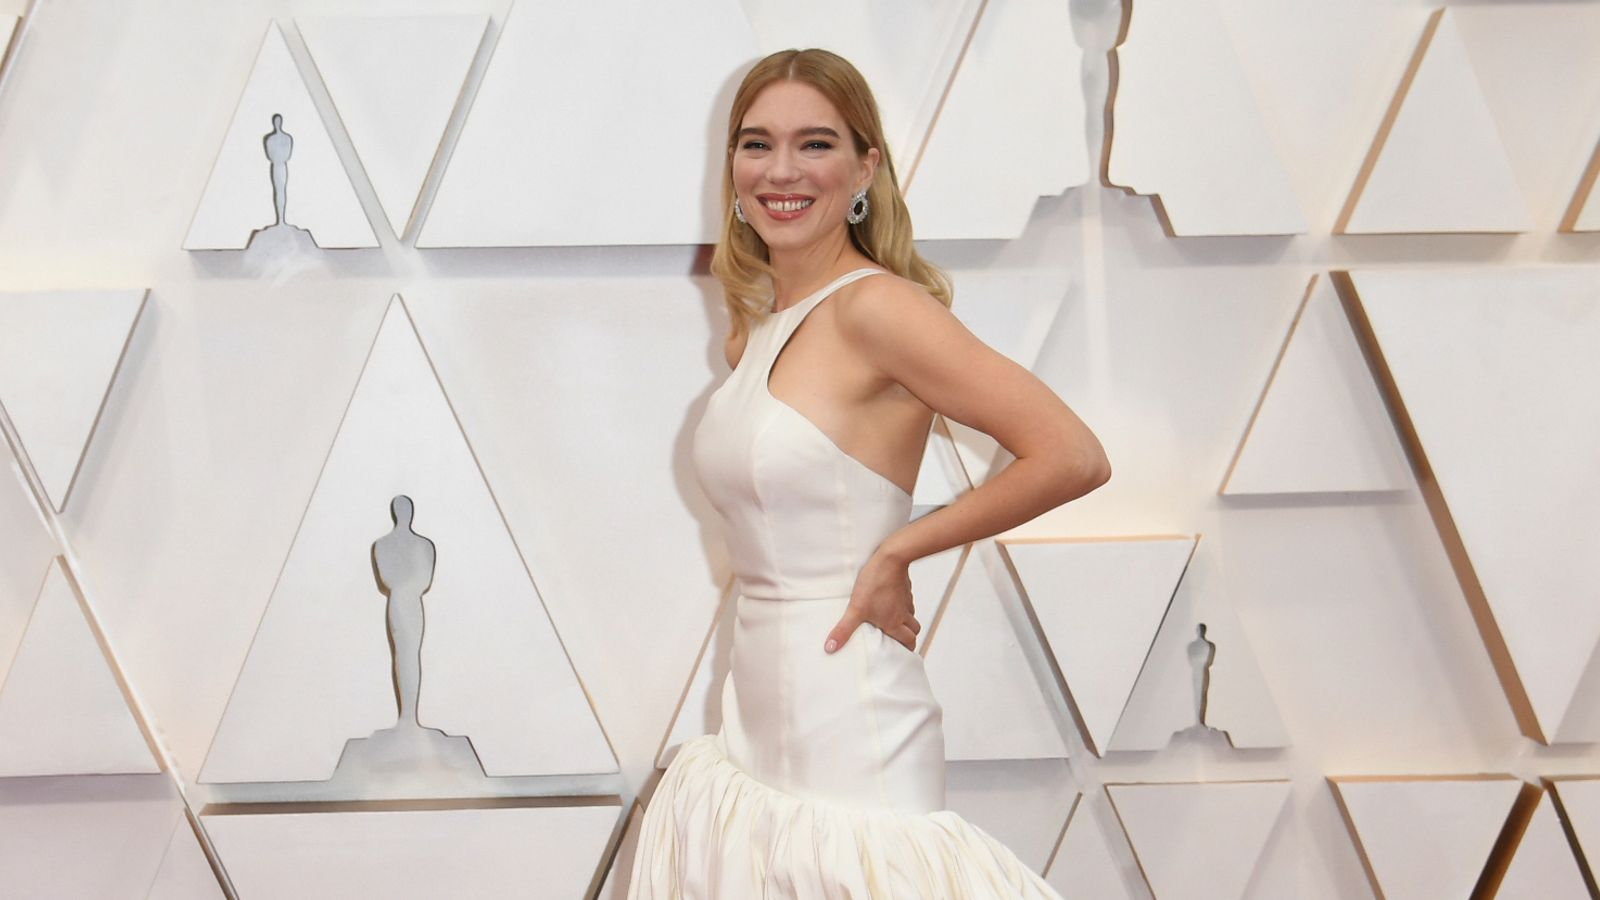 COVID-19: Cannes rubbishes rumours of festival cluster after James Bond star Lea Seydoux tests positive